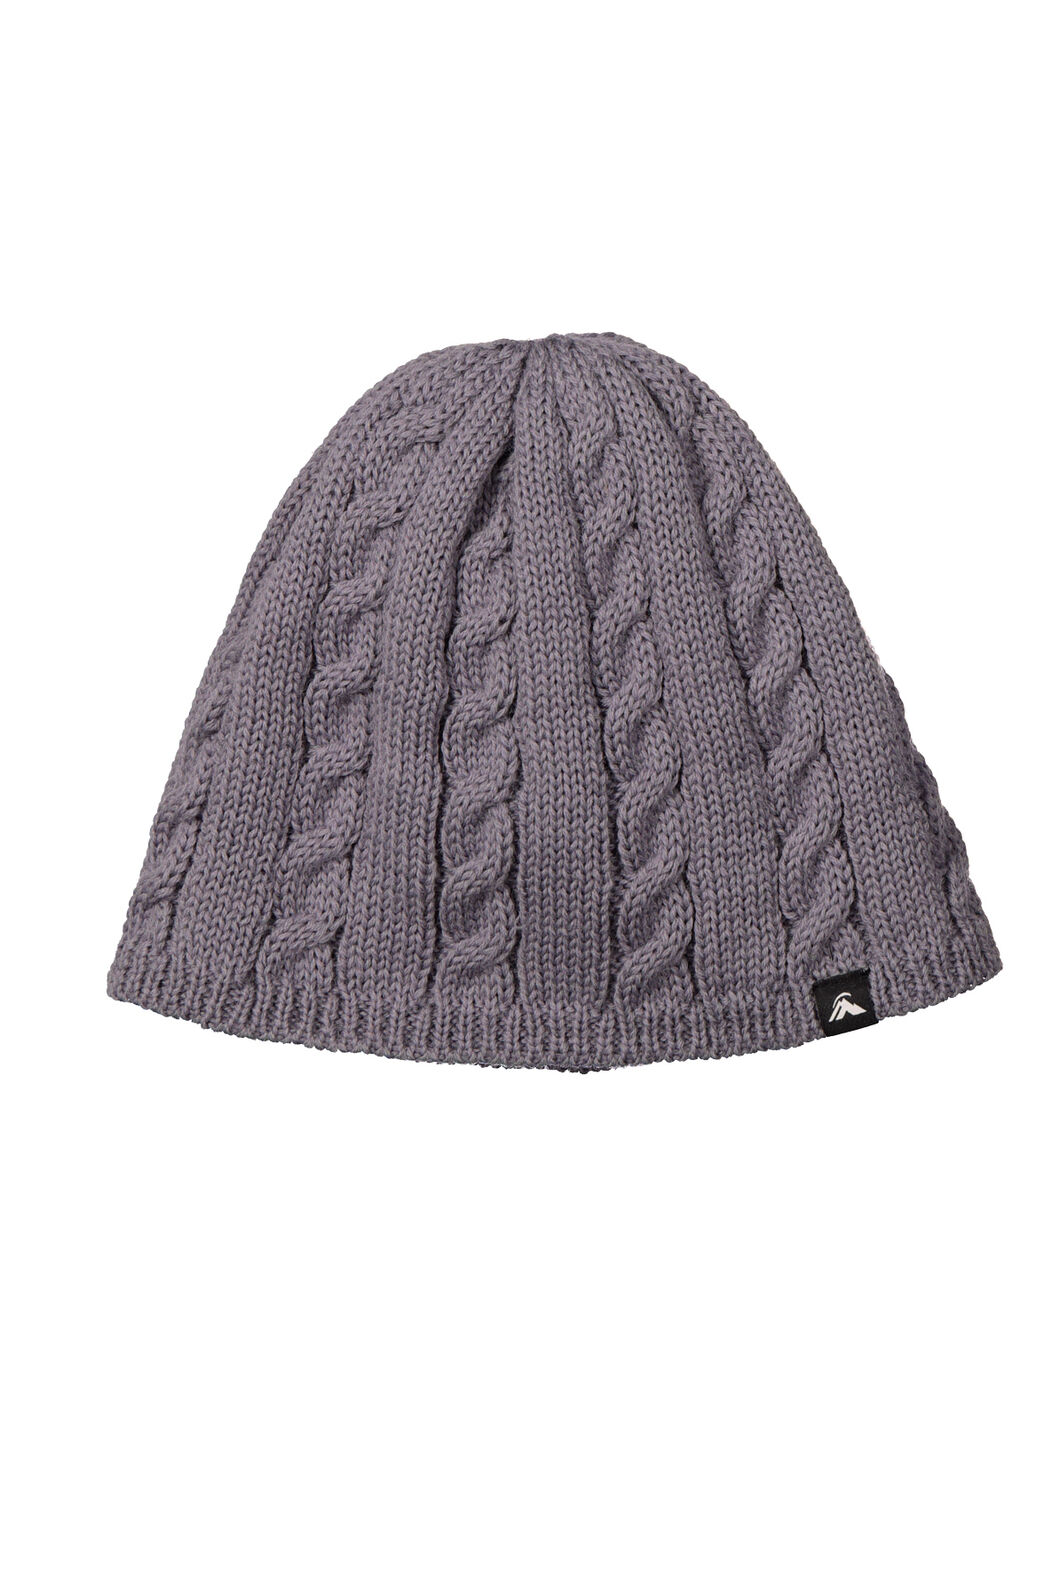 Cable Beanie, Mid Grey Marle, hi-res